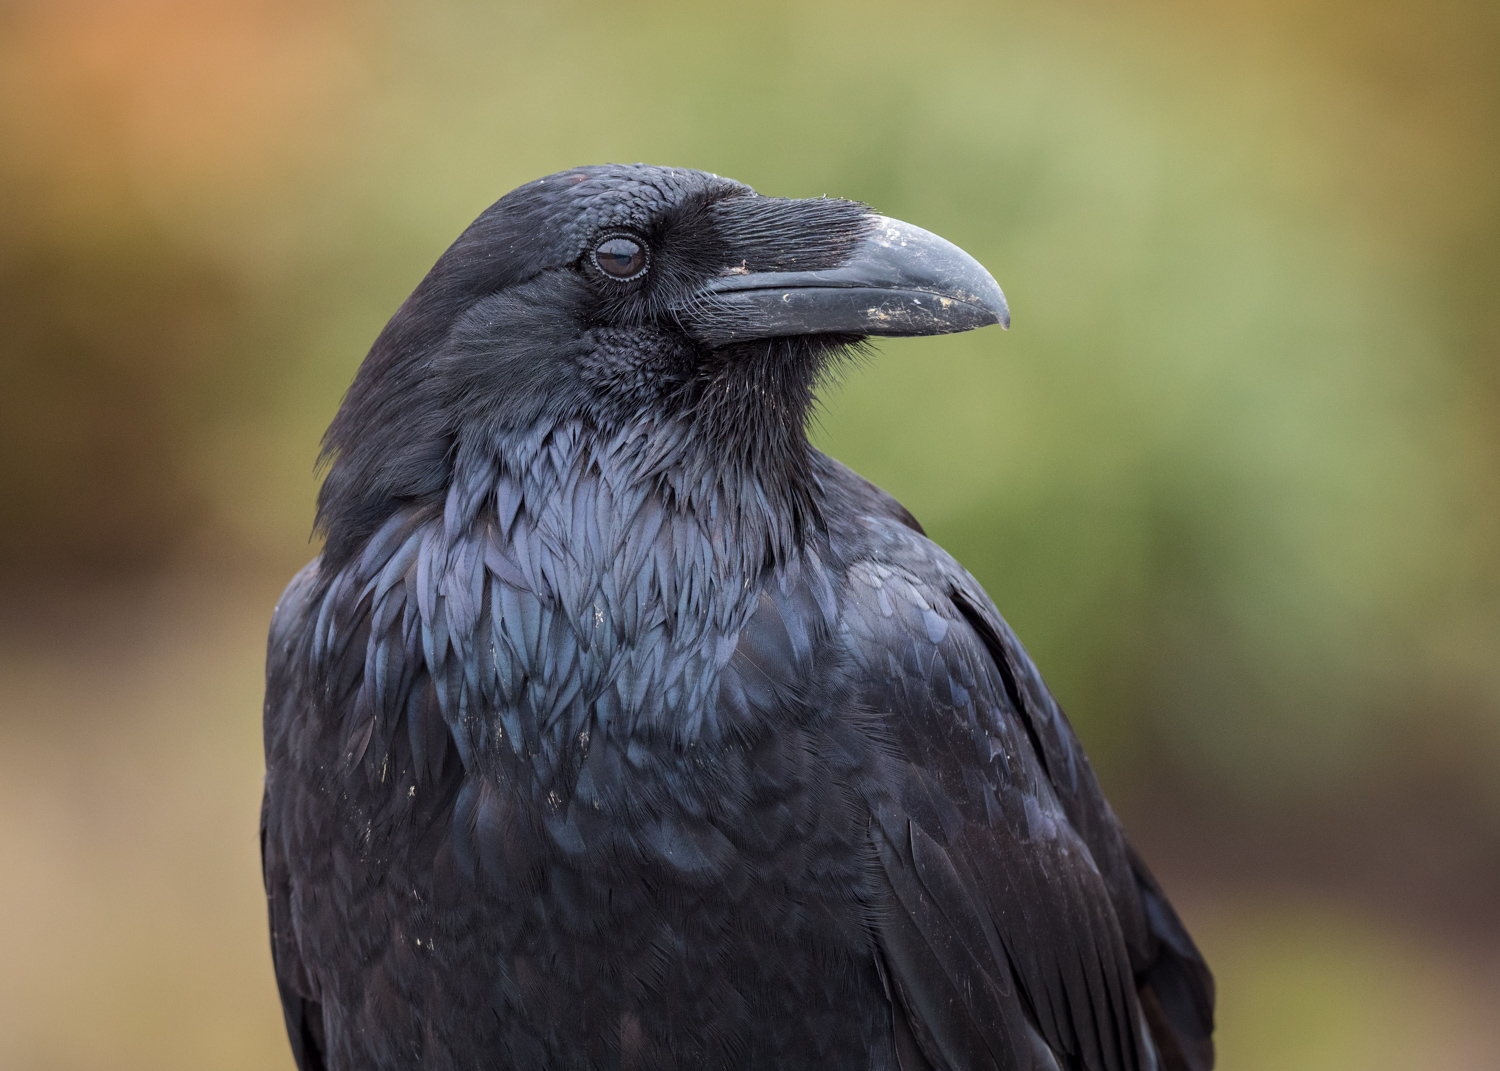 Review of the Olympus 300mm F4 PRO Lens - black raven close up